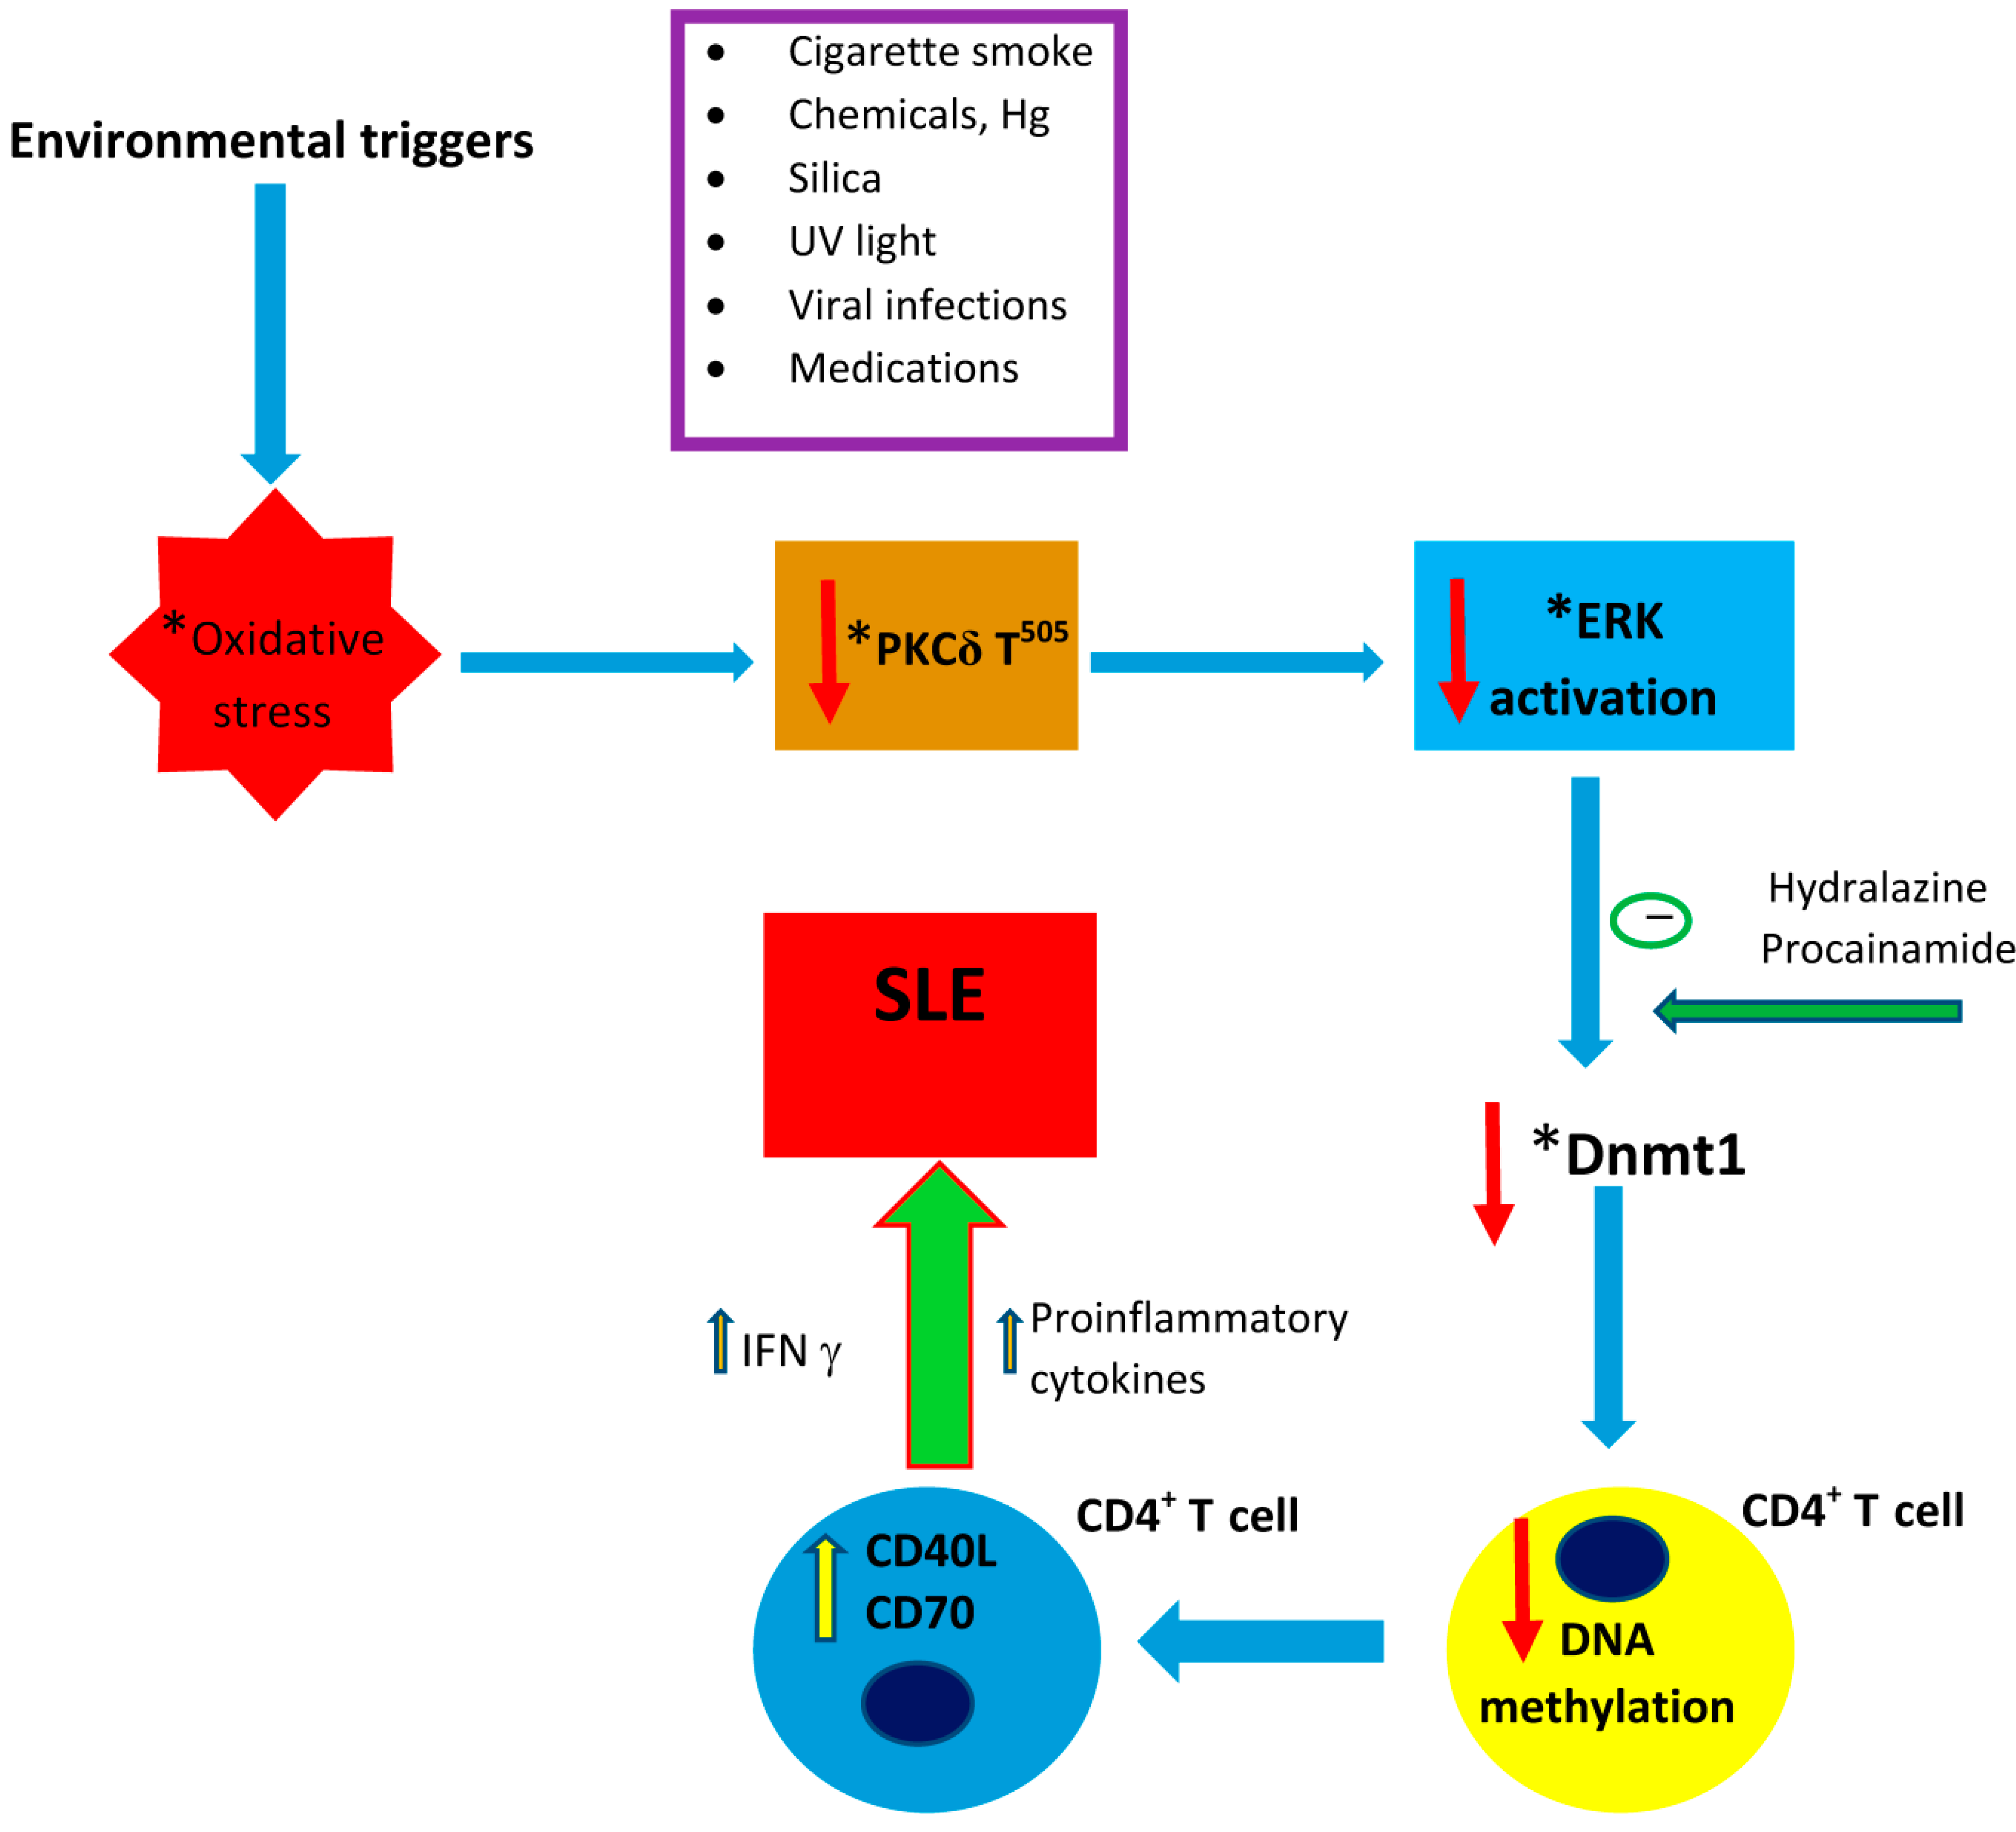 ijms free full text environmental factors, toxicants and Multiple Sclerosis Diagram